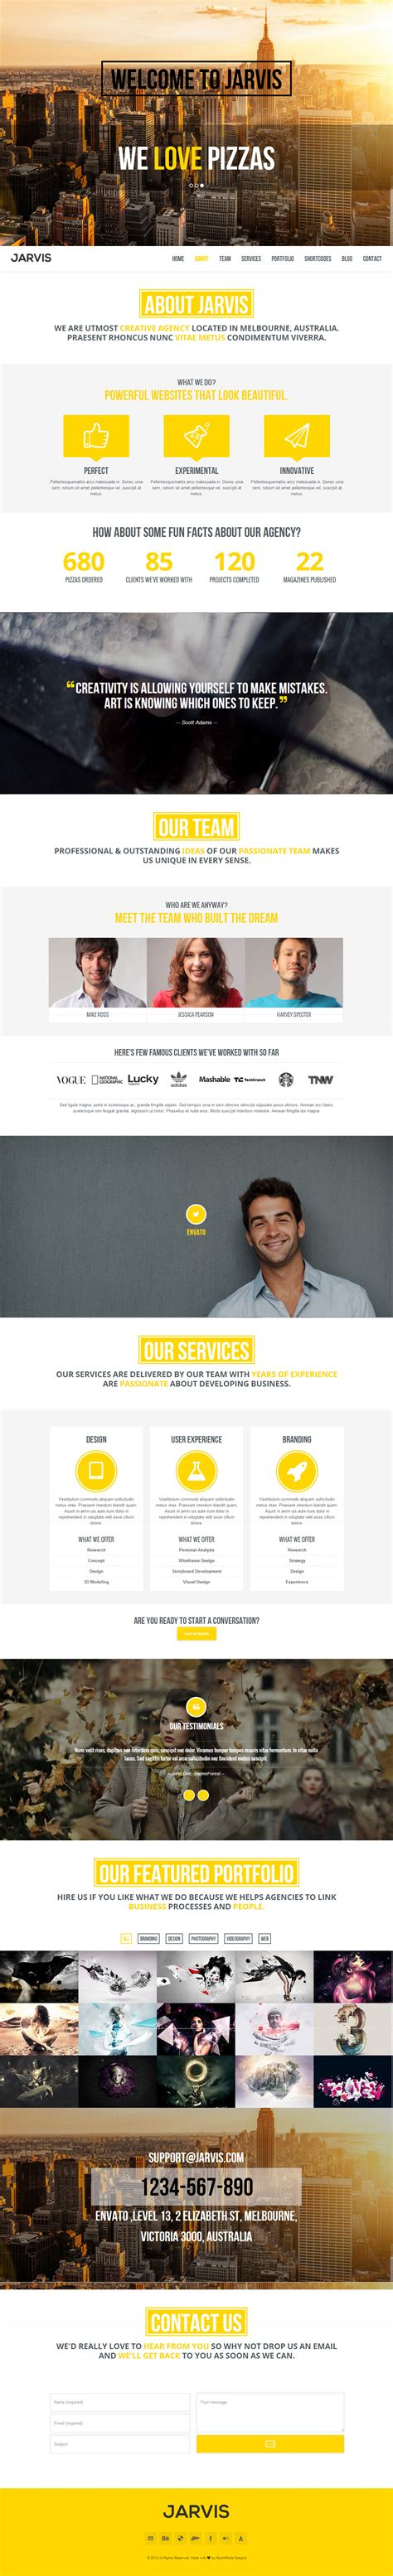 drupal themes best 2014 5 best responsive drupal one page themes in 2014